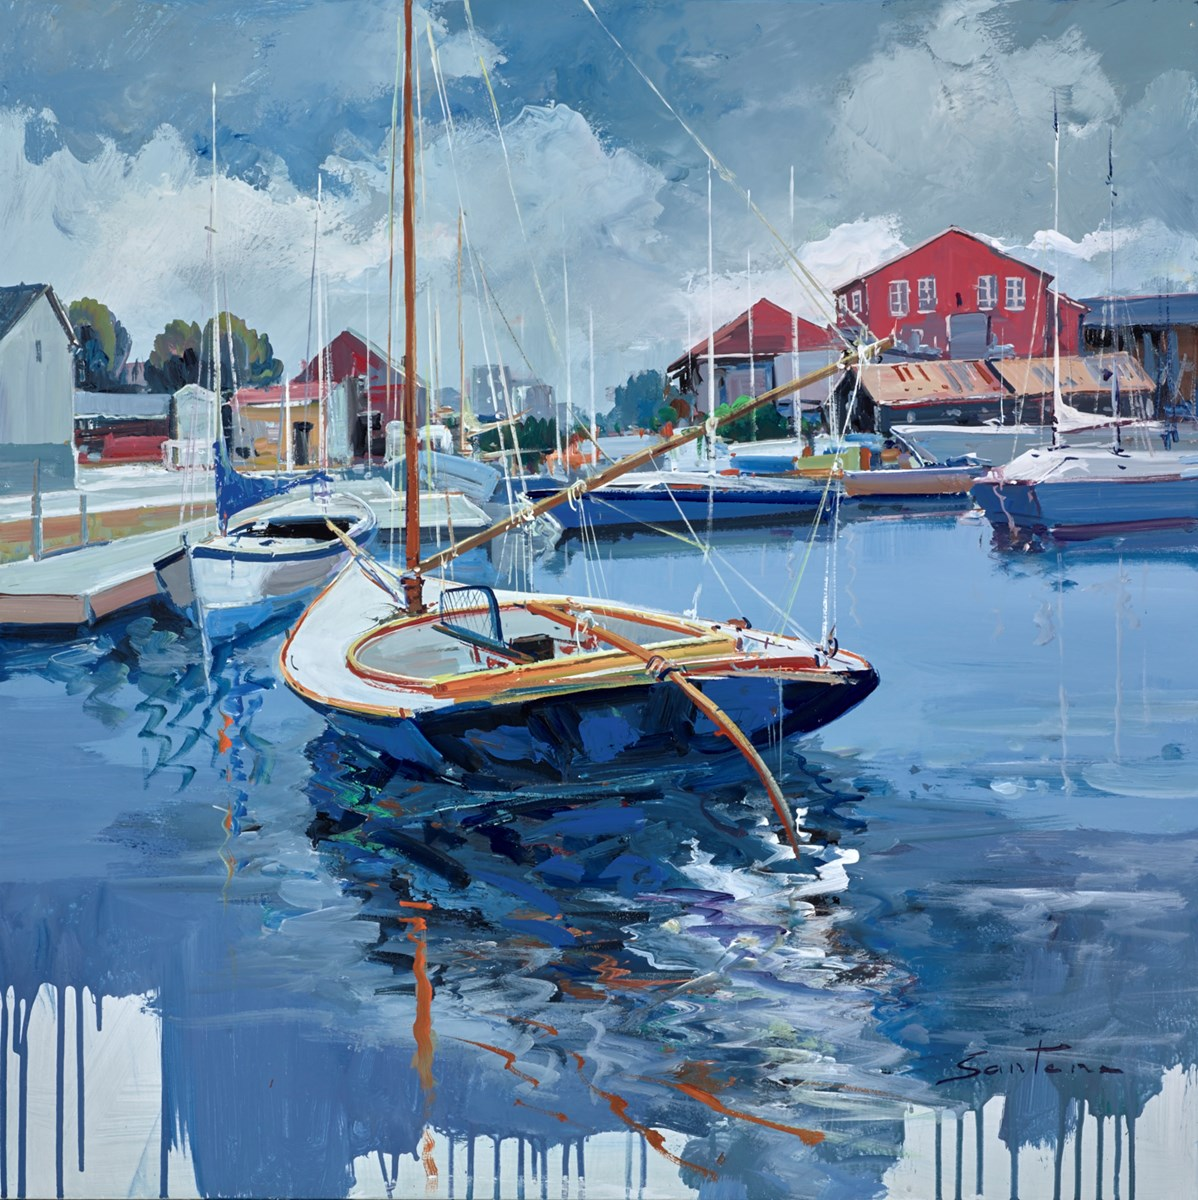 Waiting for the Tide II by santana -  sized 32x32 inches. Available from Whitewall Galleries